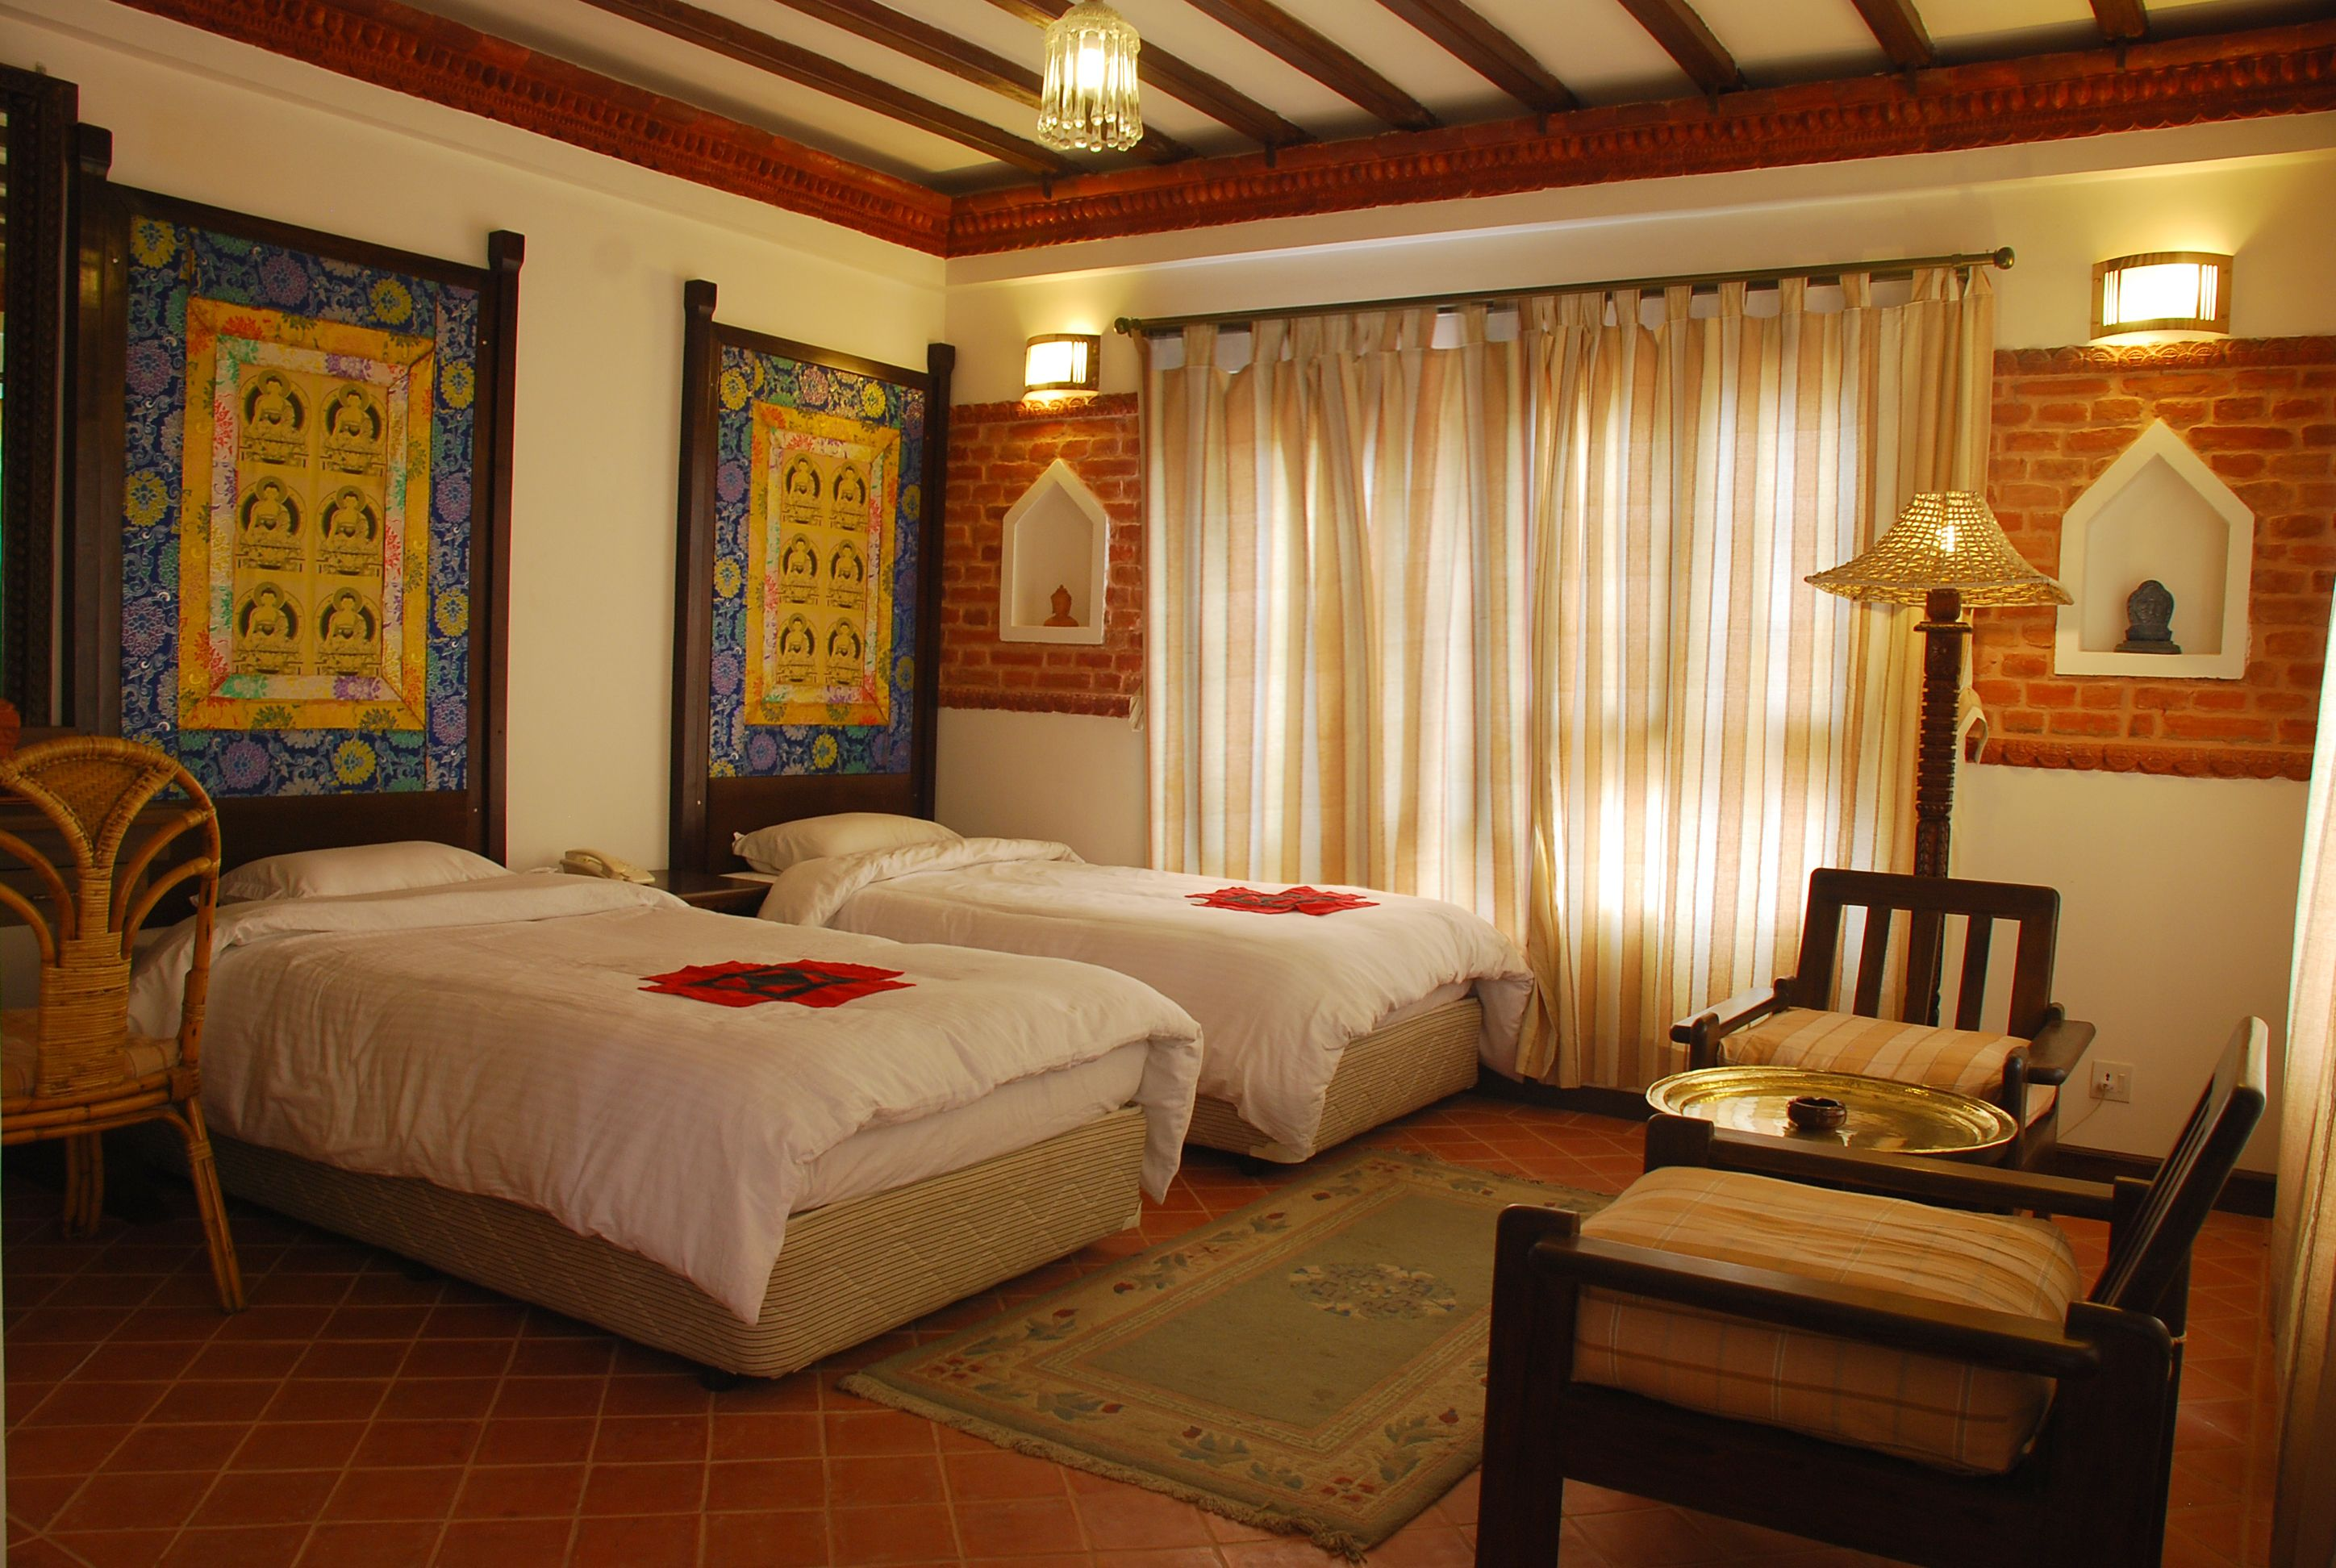 About Hotel Manaslu Nestled Amidst The Sheer Beauty And Grandeur